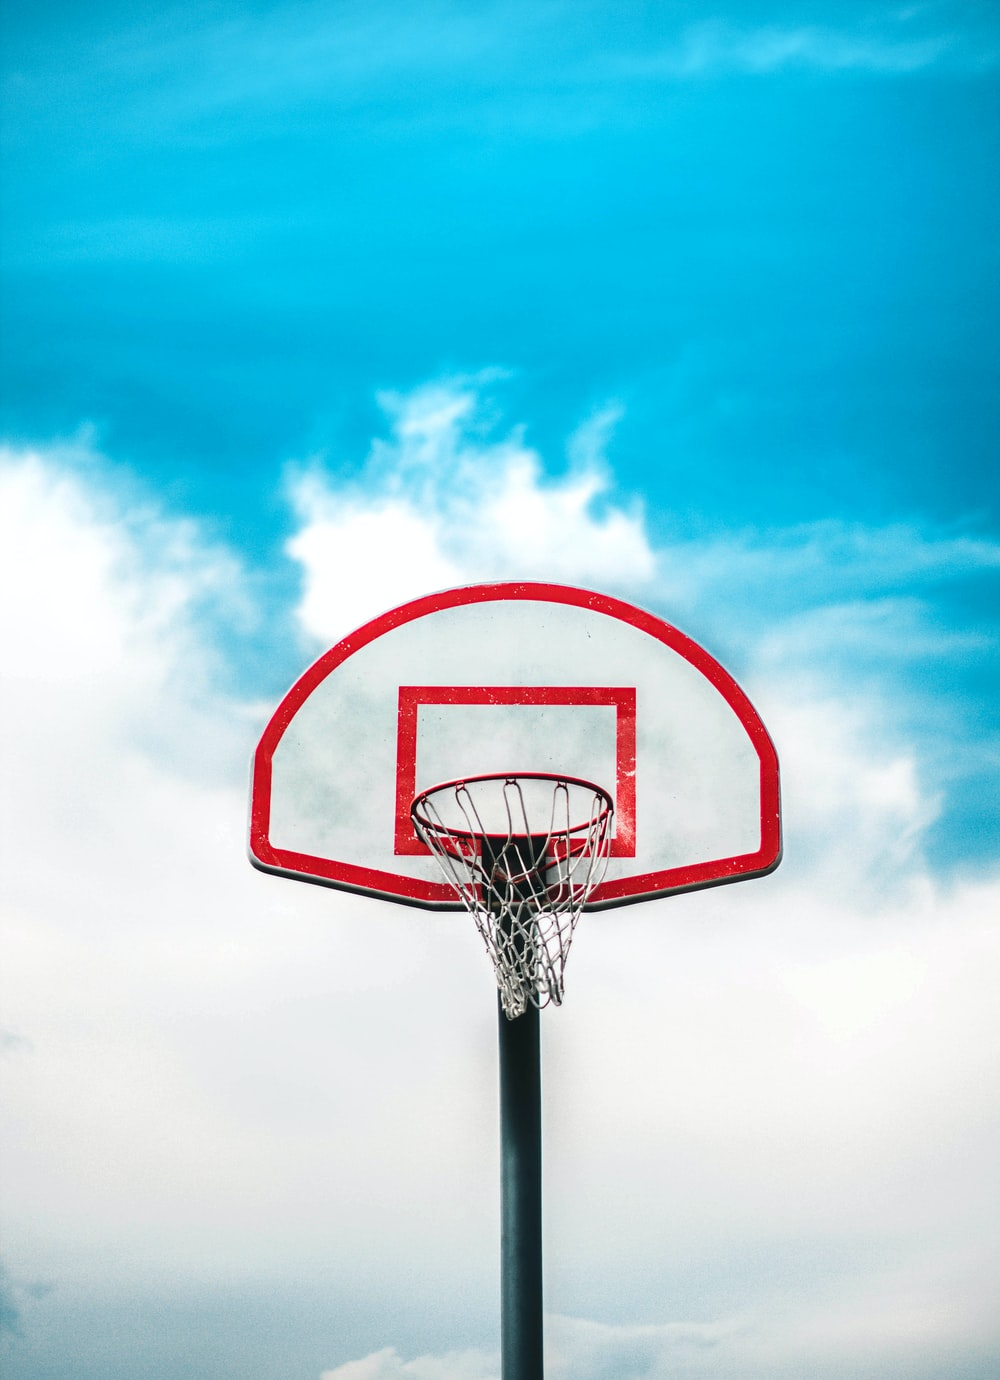 500 Basketball Hoop Pictures [HD] Download Images on Unsplash 1000x1380